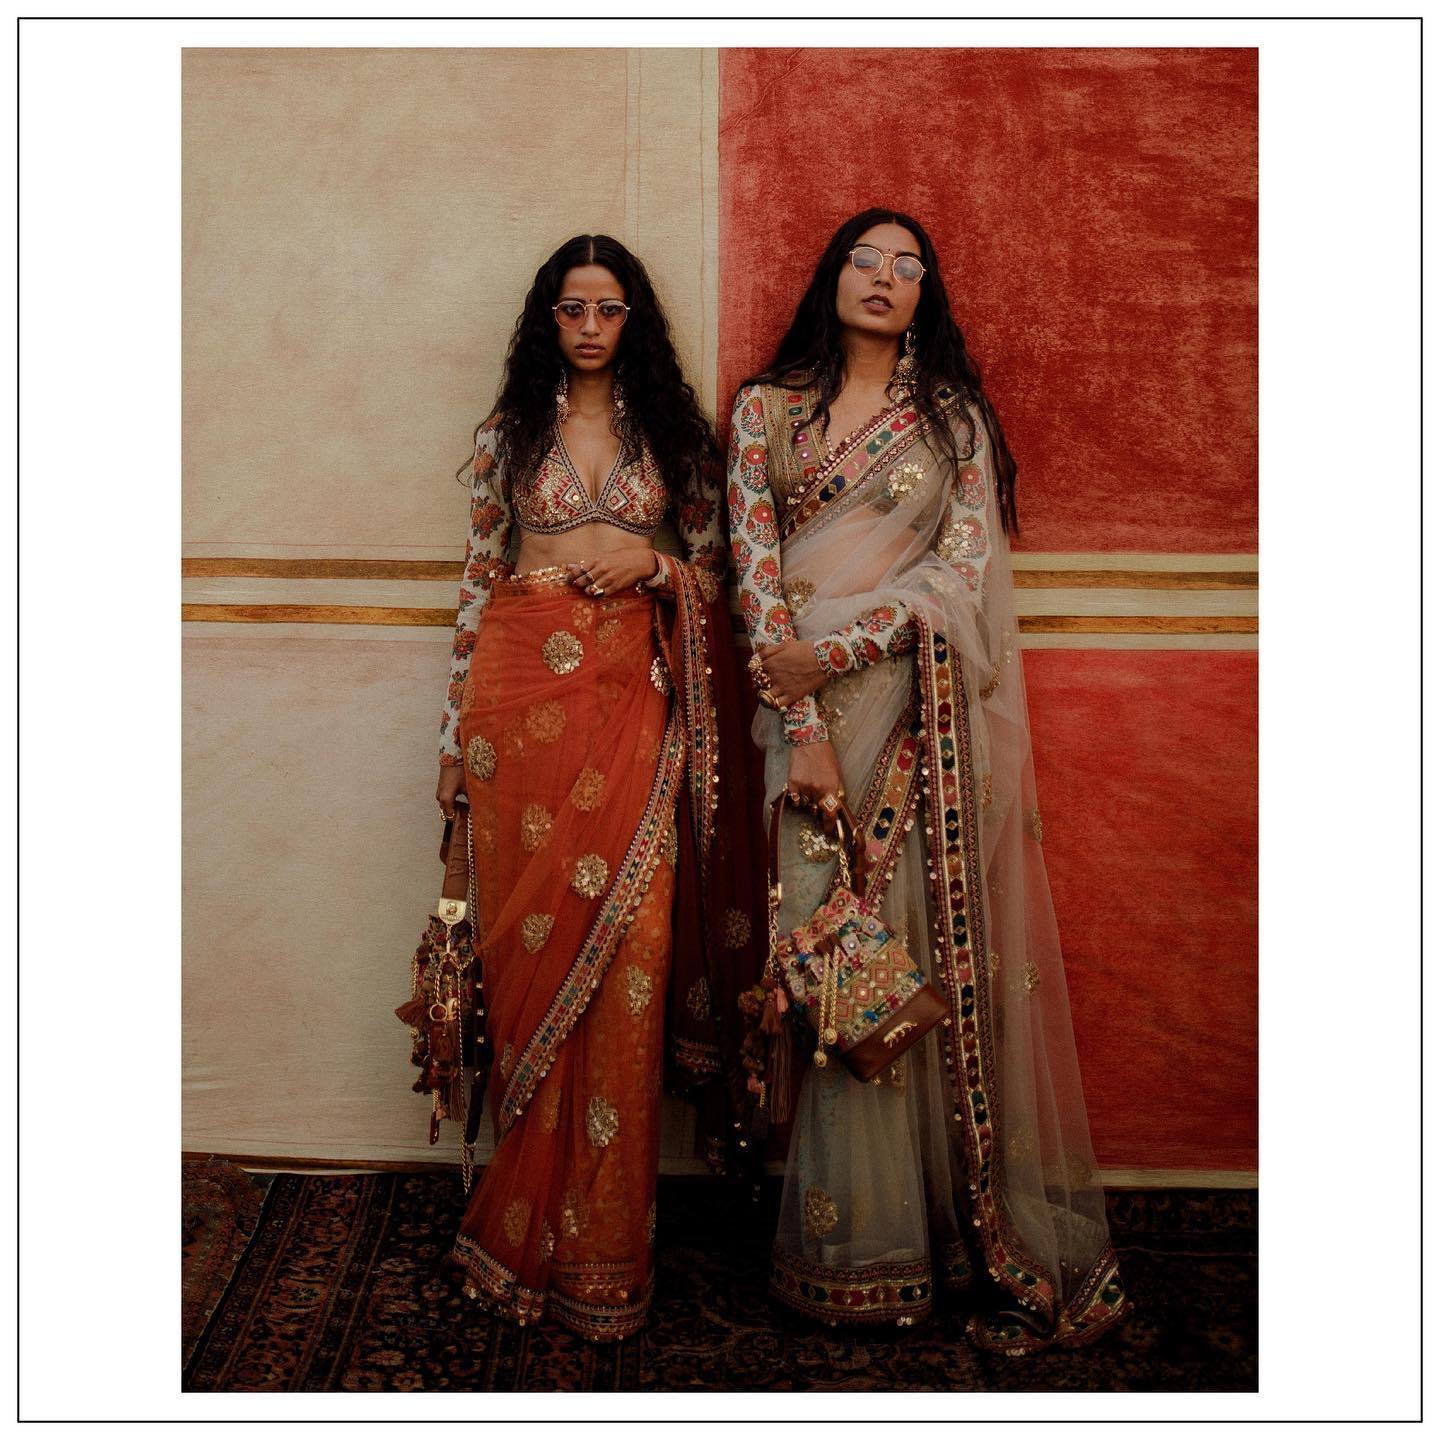 The Sabyasachi 2021 Collection. Beautiful Sabyasachi ORganzza saree.   Womenswear  jewellery Sabyasachi jewelry and accessories Sabyasachi accessories.  For all product related queries  please email at customerservice@sabyasachi.com or contact  retail stores directly. 2021-04-04